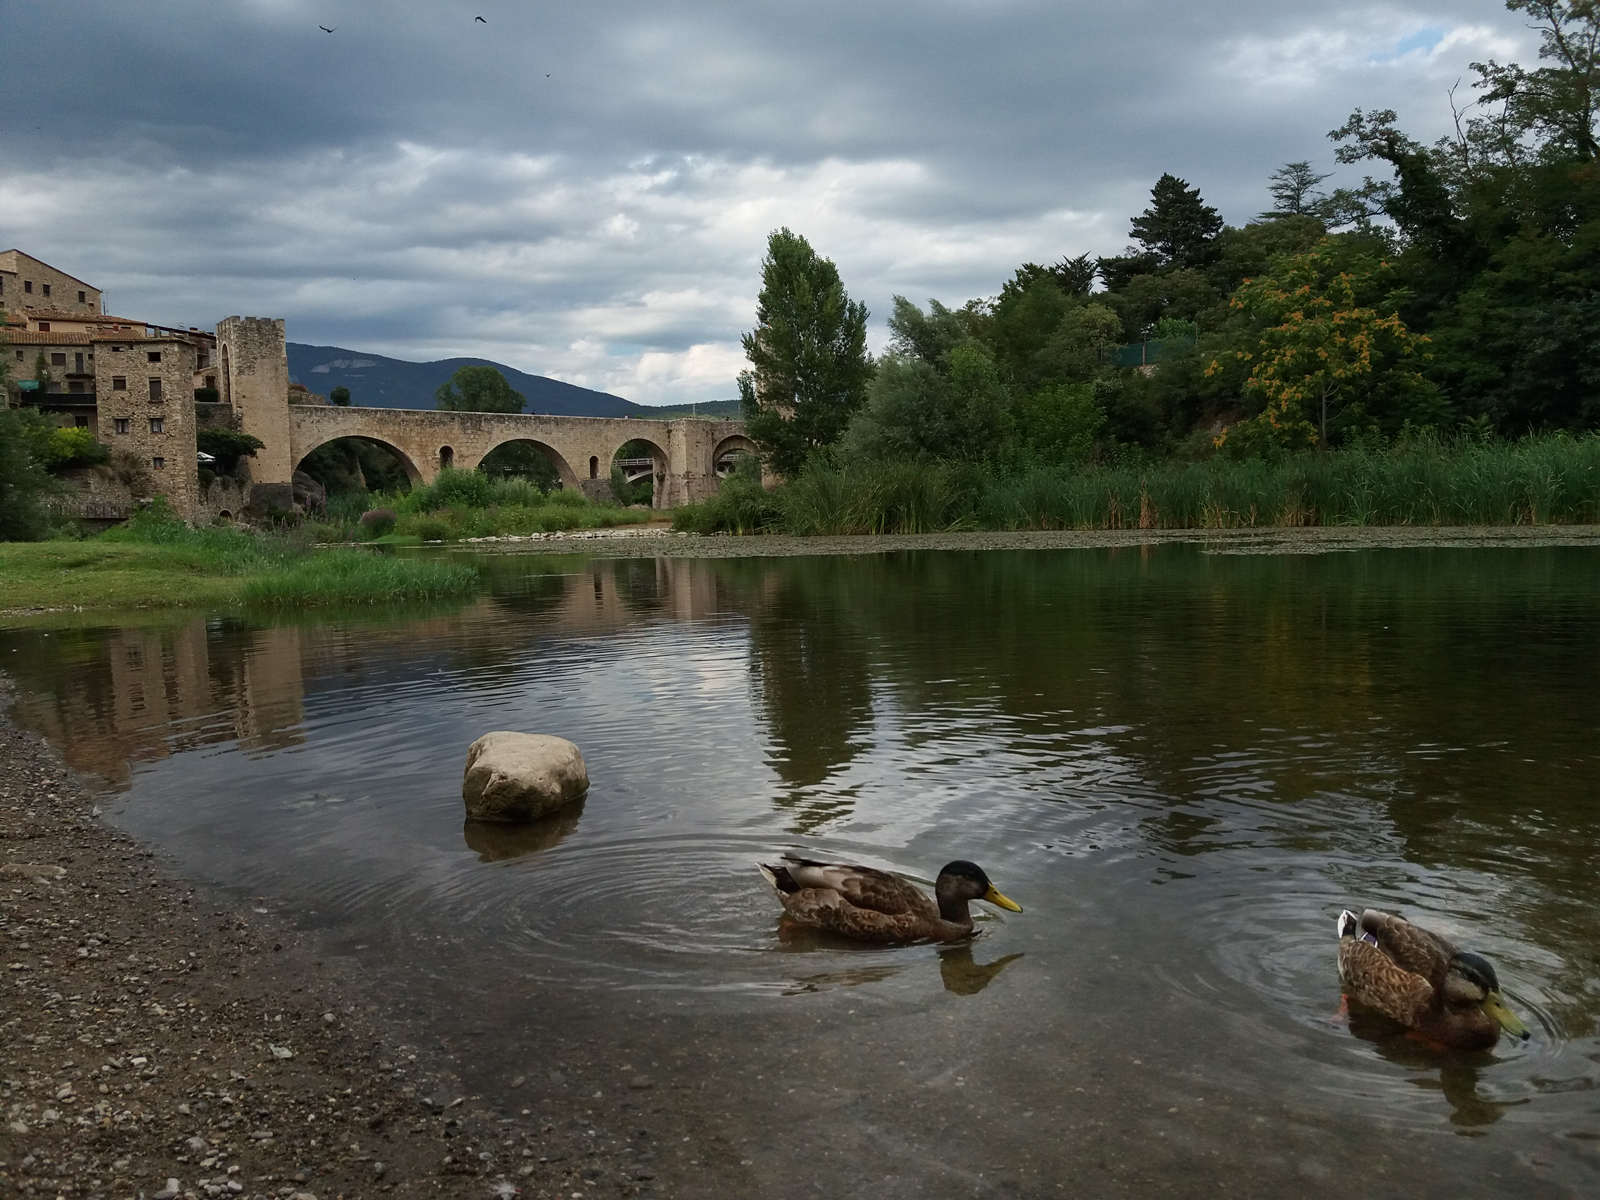 Besalu bridge with river and ducks